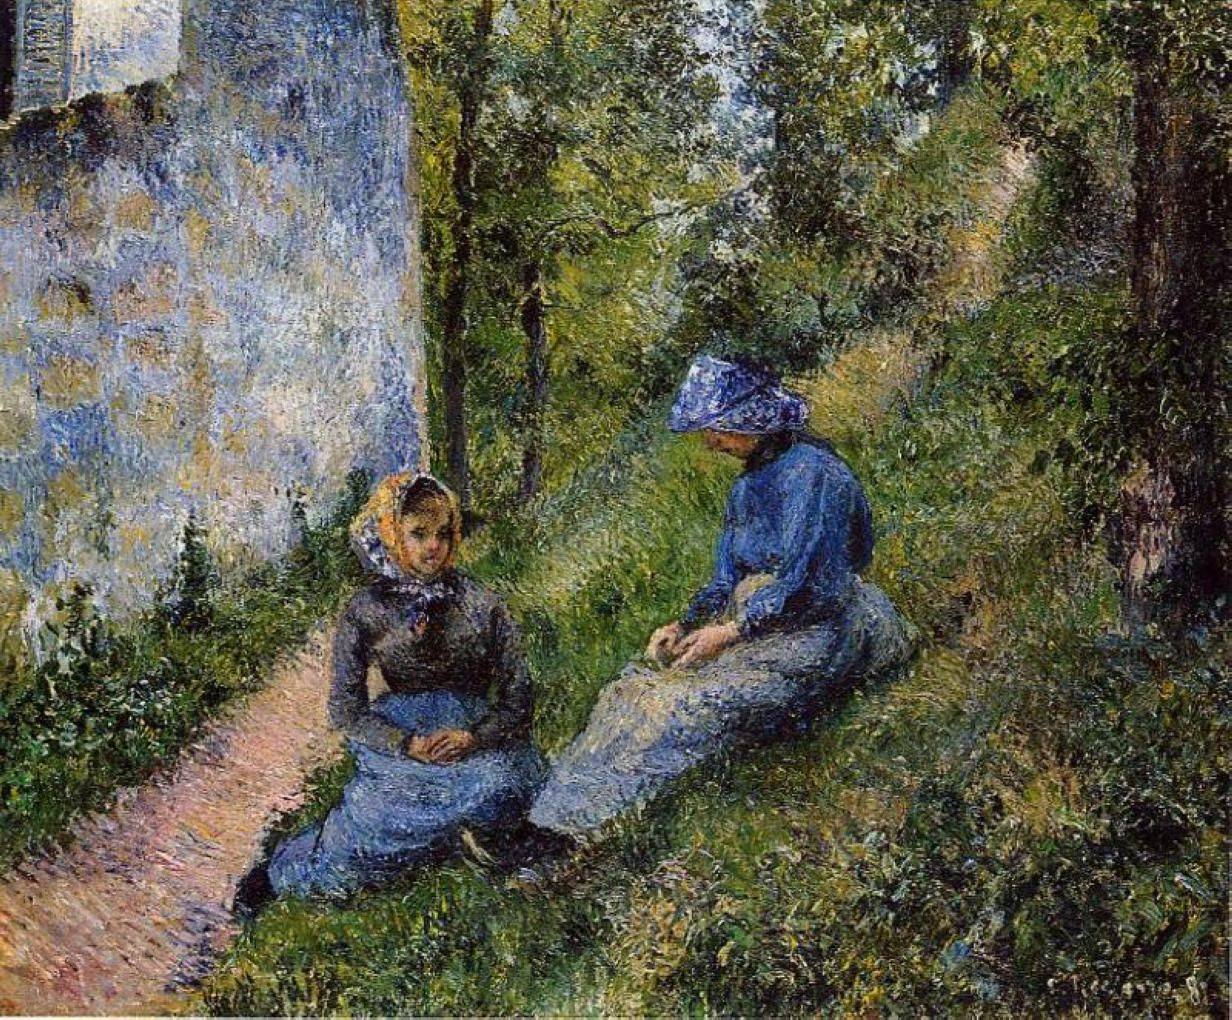 Seated Peasants, Sewing by @artpissarro #impressionism